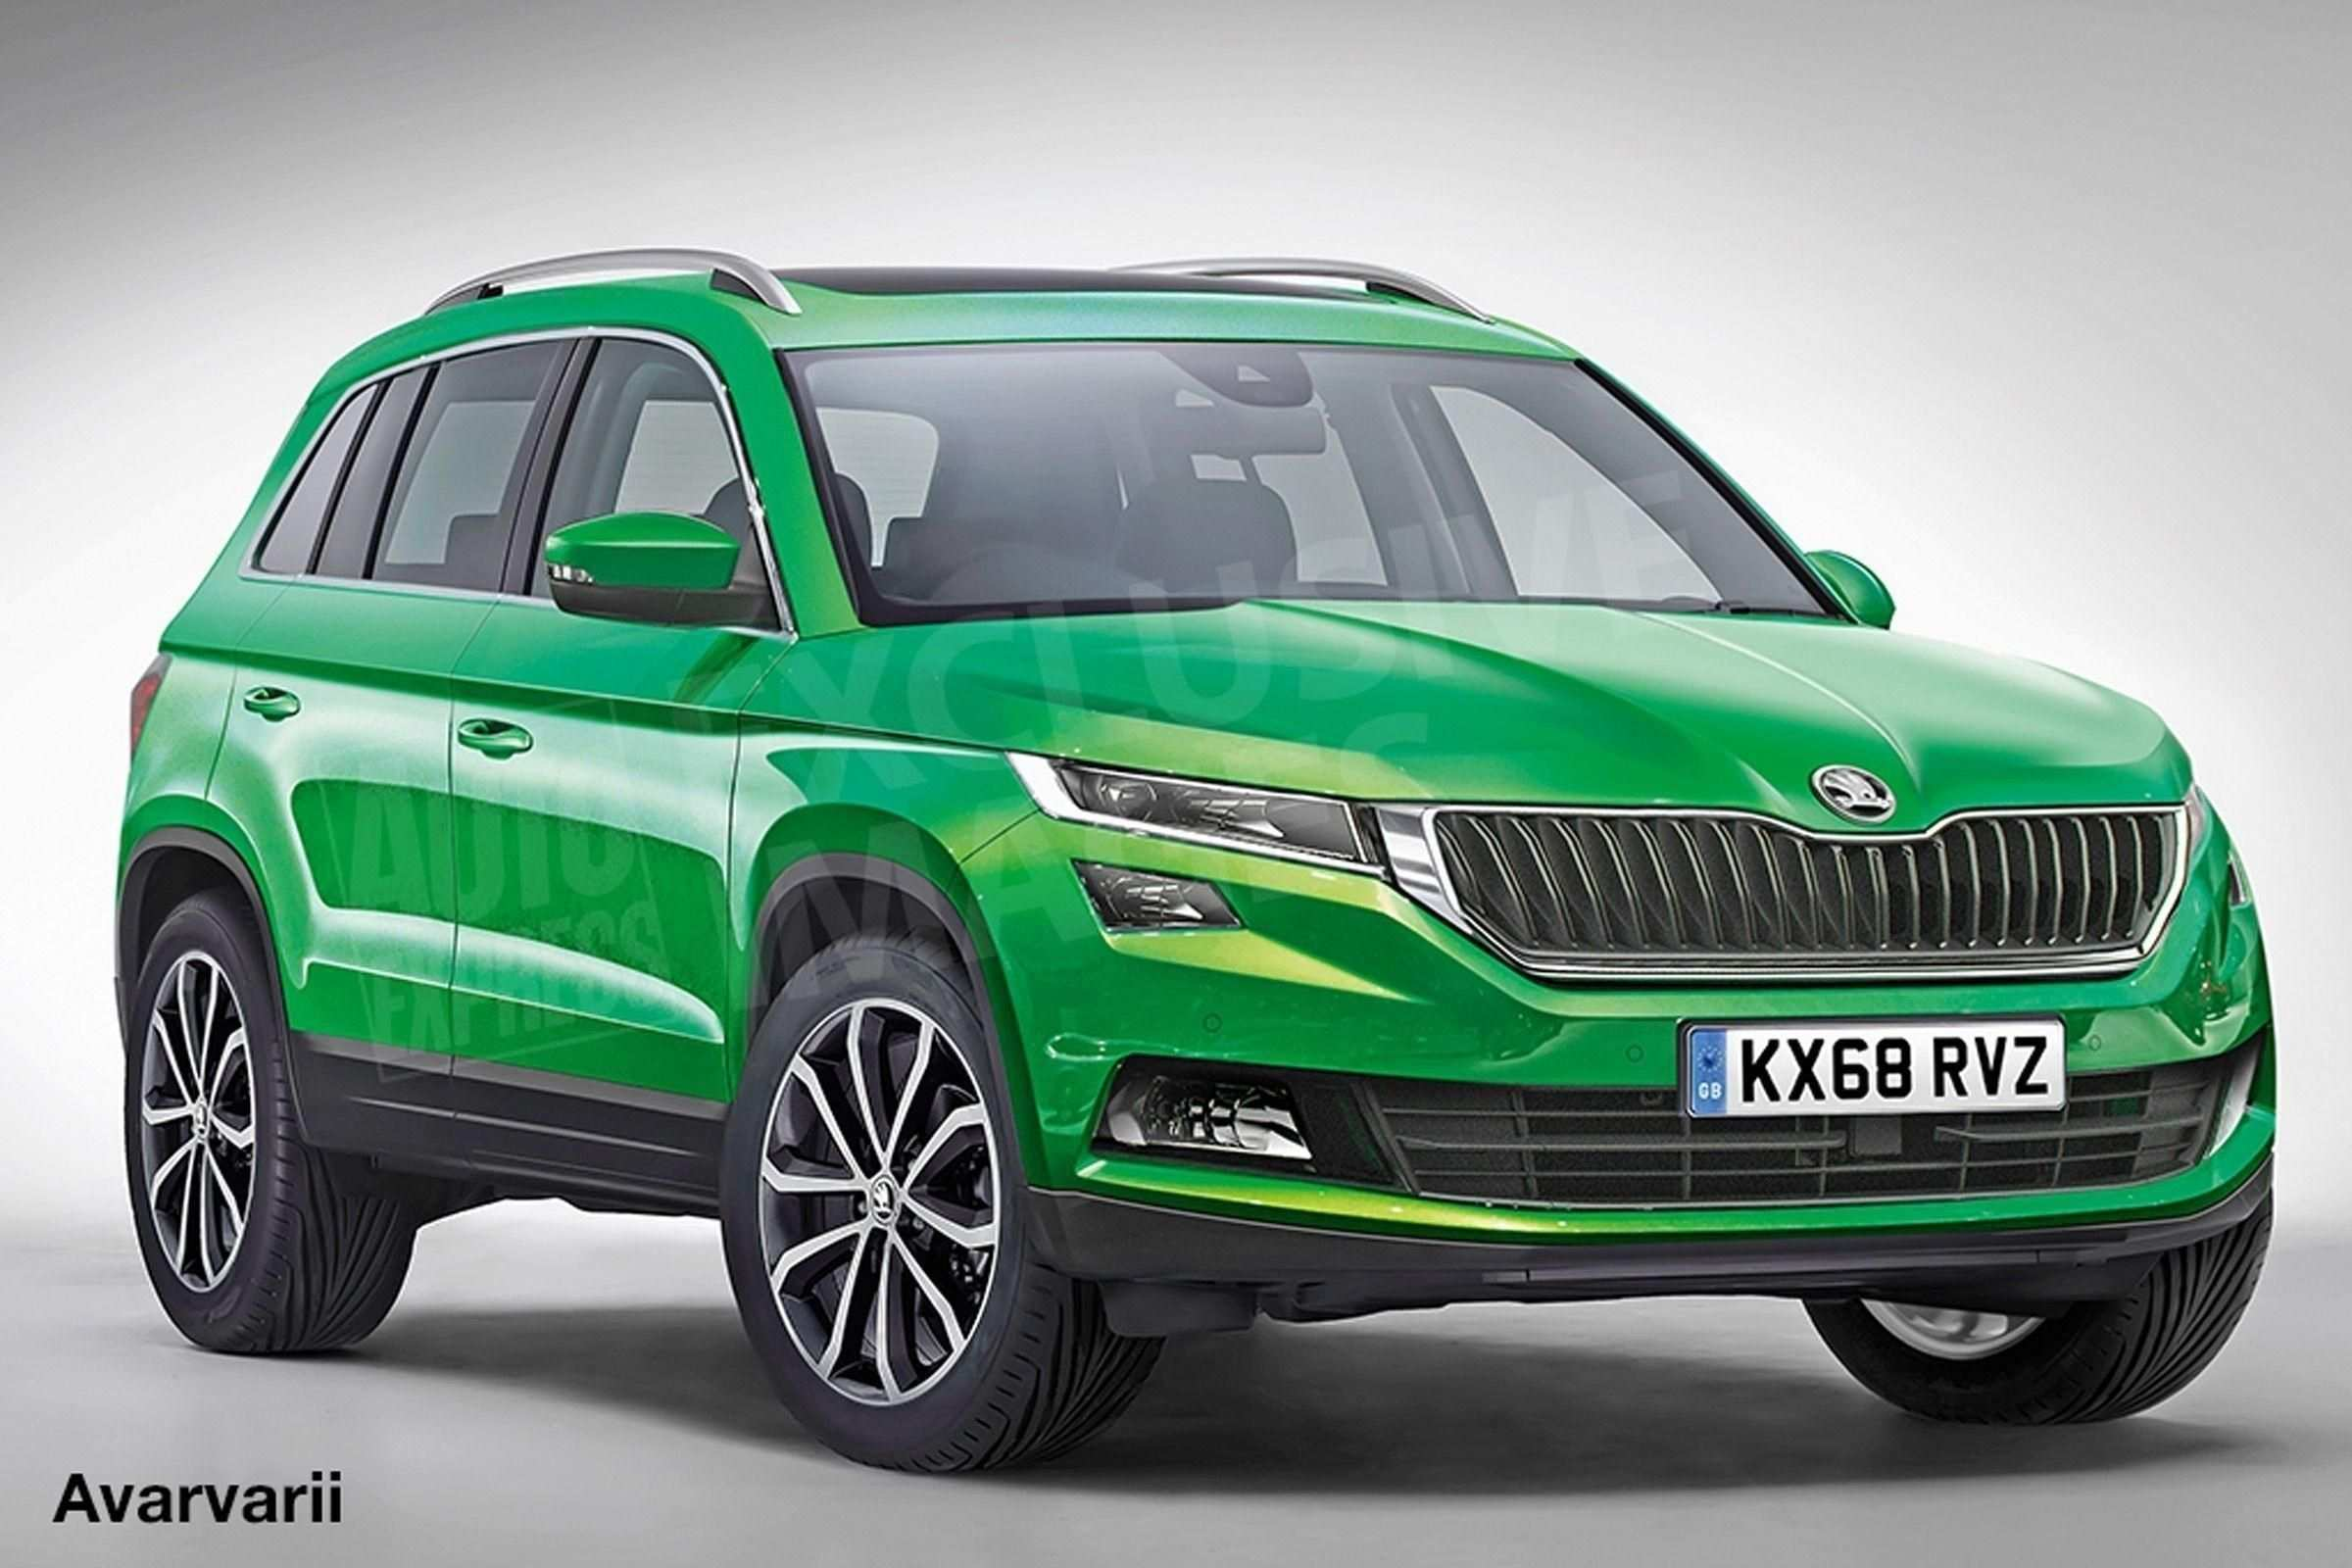 42 New 2019 Skoda Snowman Full Preview Picture